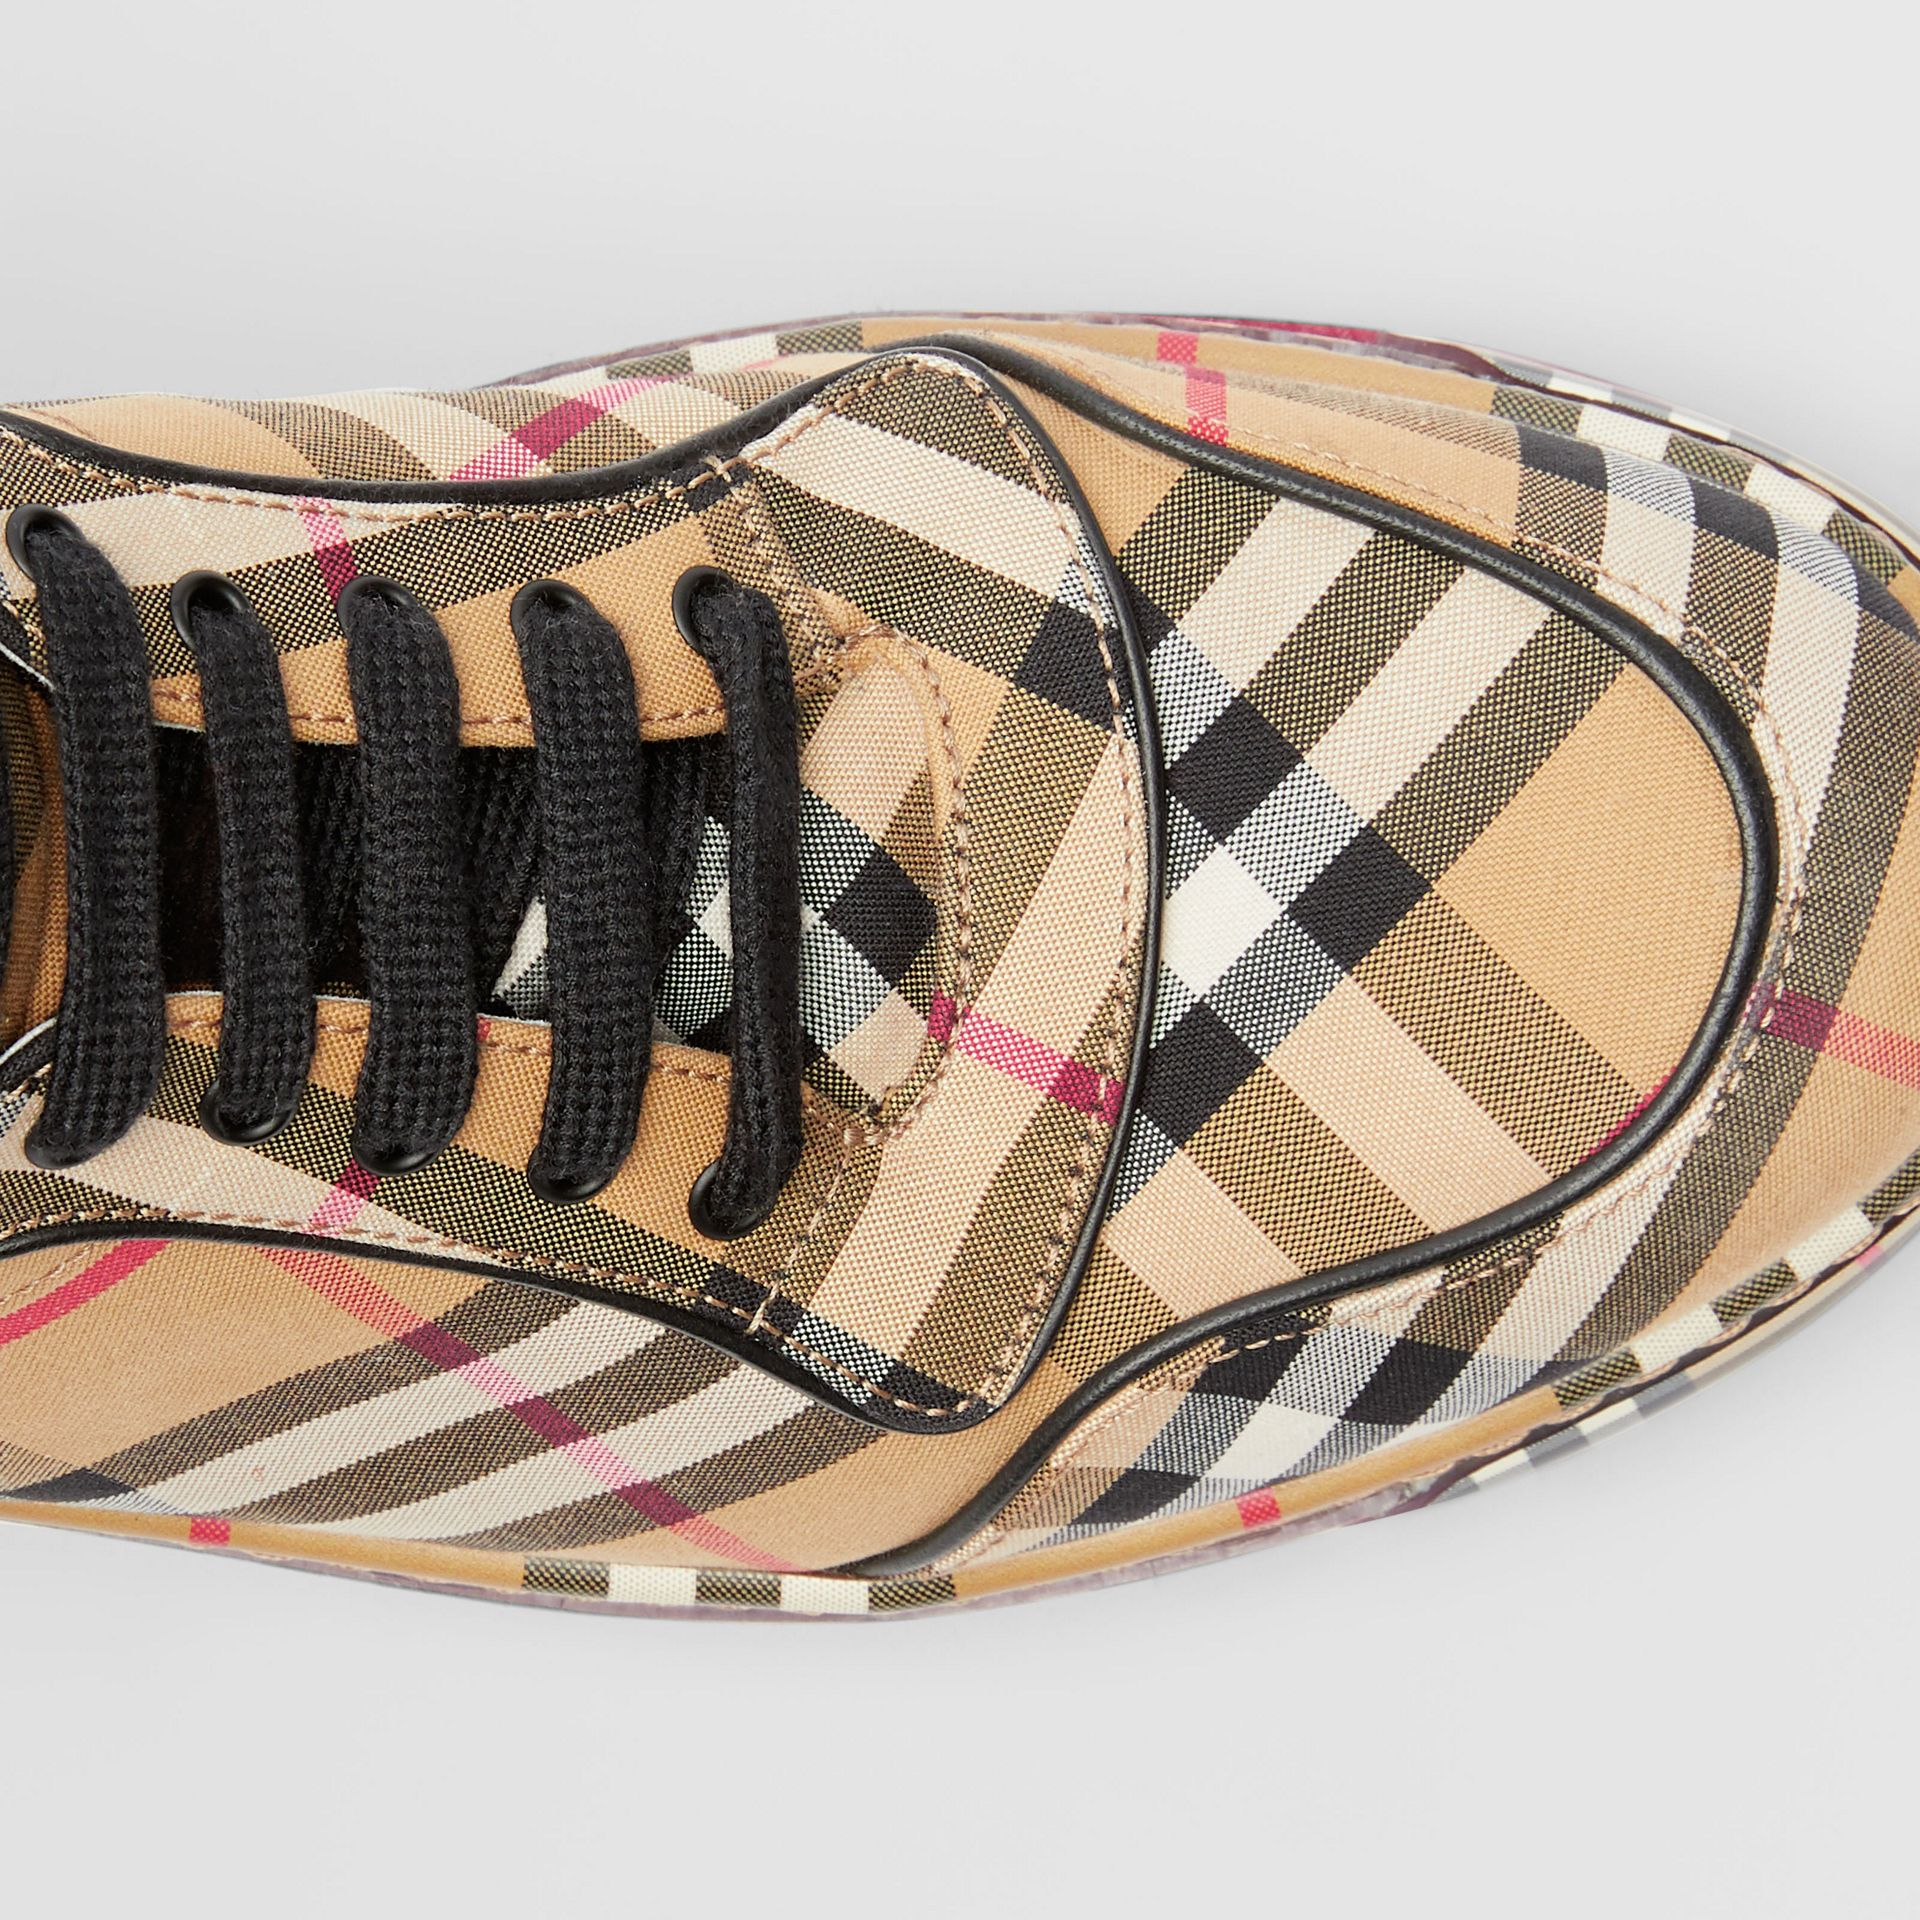 Vintage Check Cotton High-top Sneakers in Antique Yellow - Women | Burberry Australia - gallery image 1